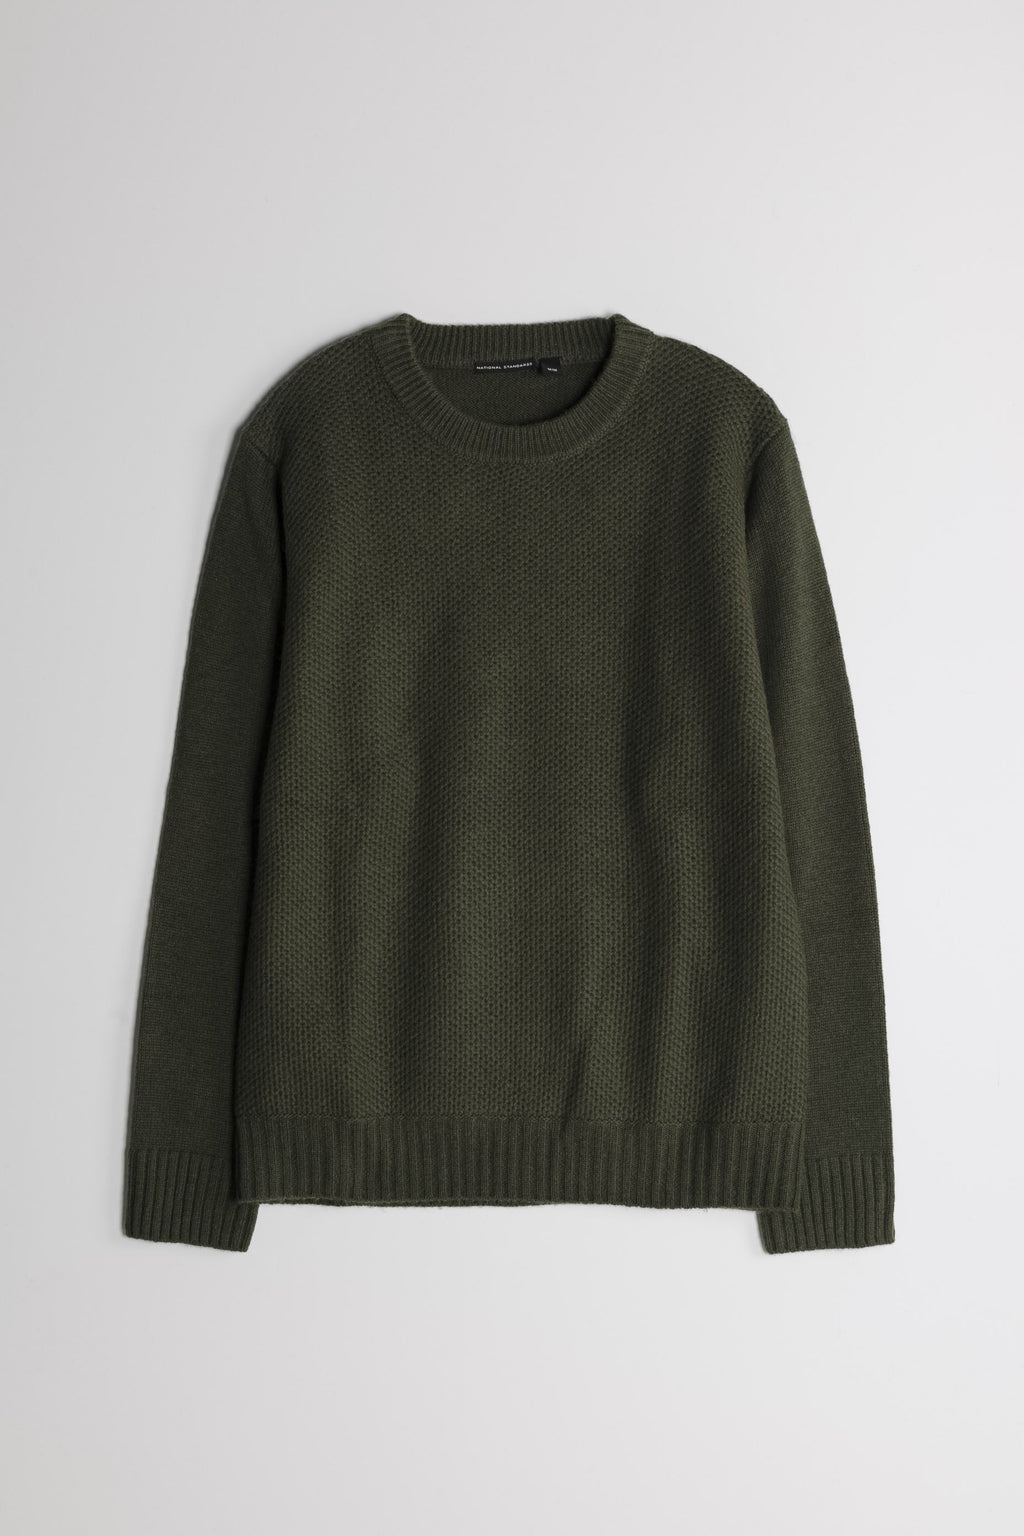 Lambswool Heavy Gauge Crew in Army Green 01